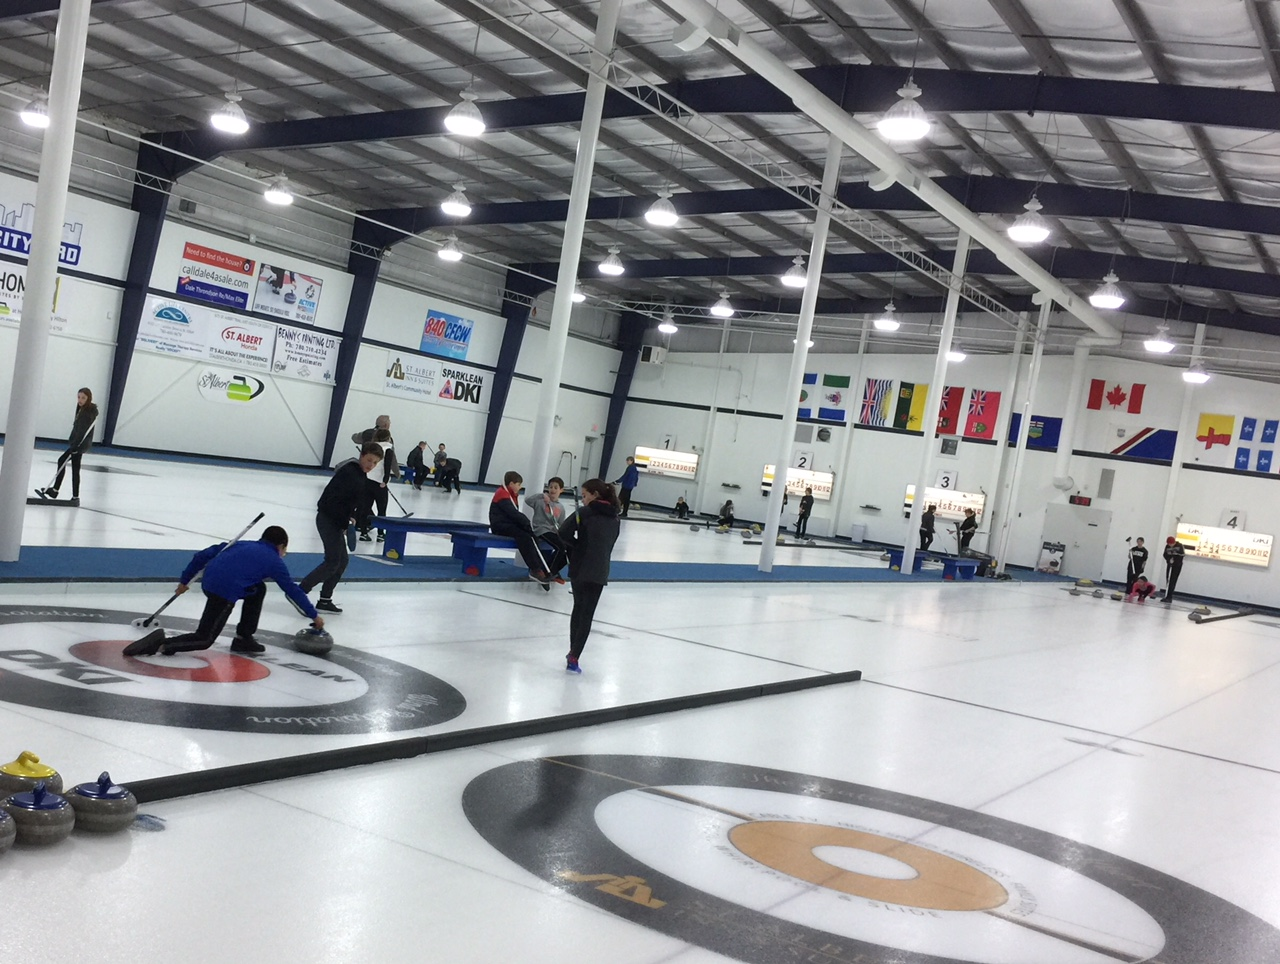 Thurs curling